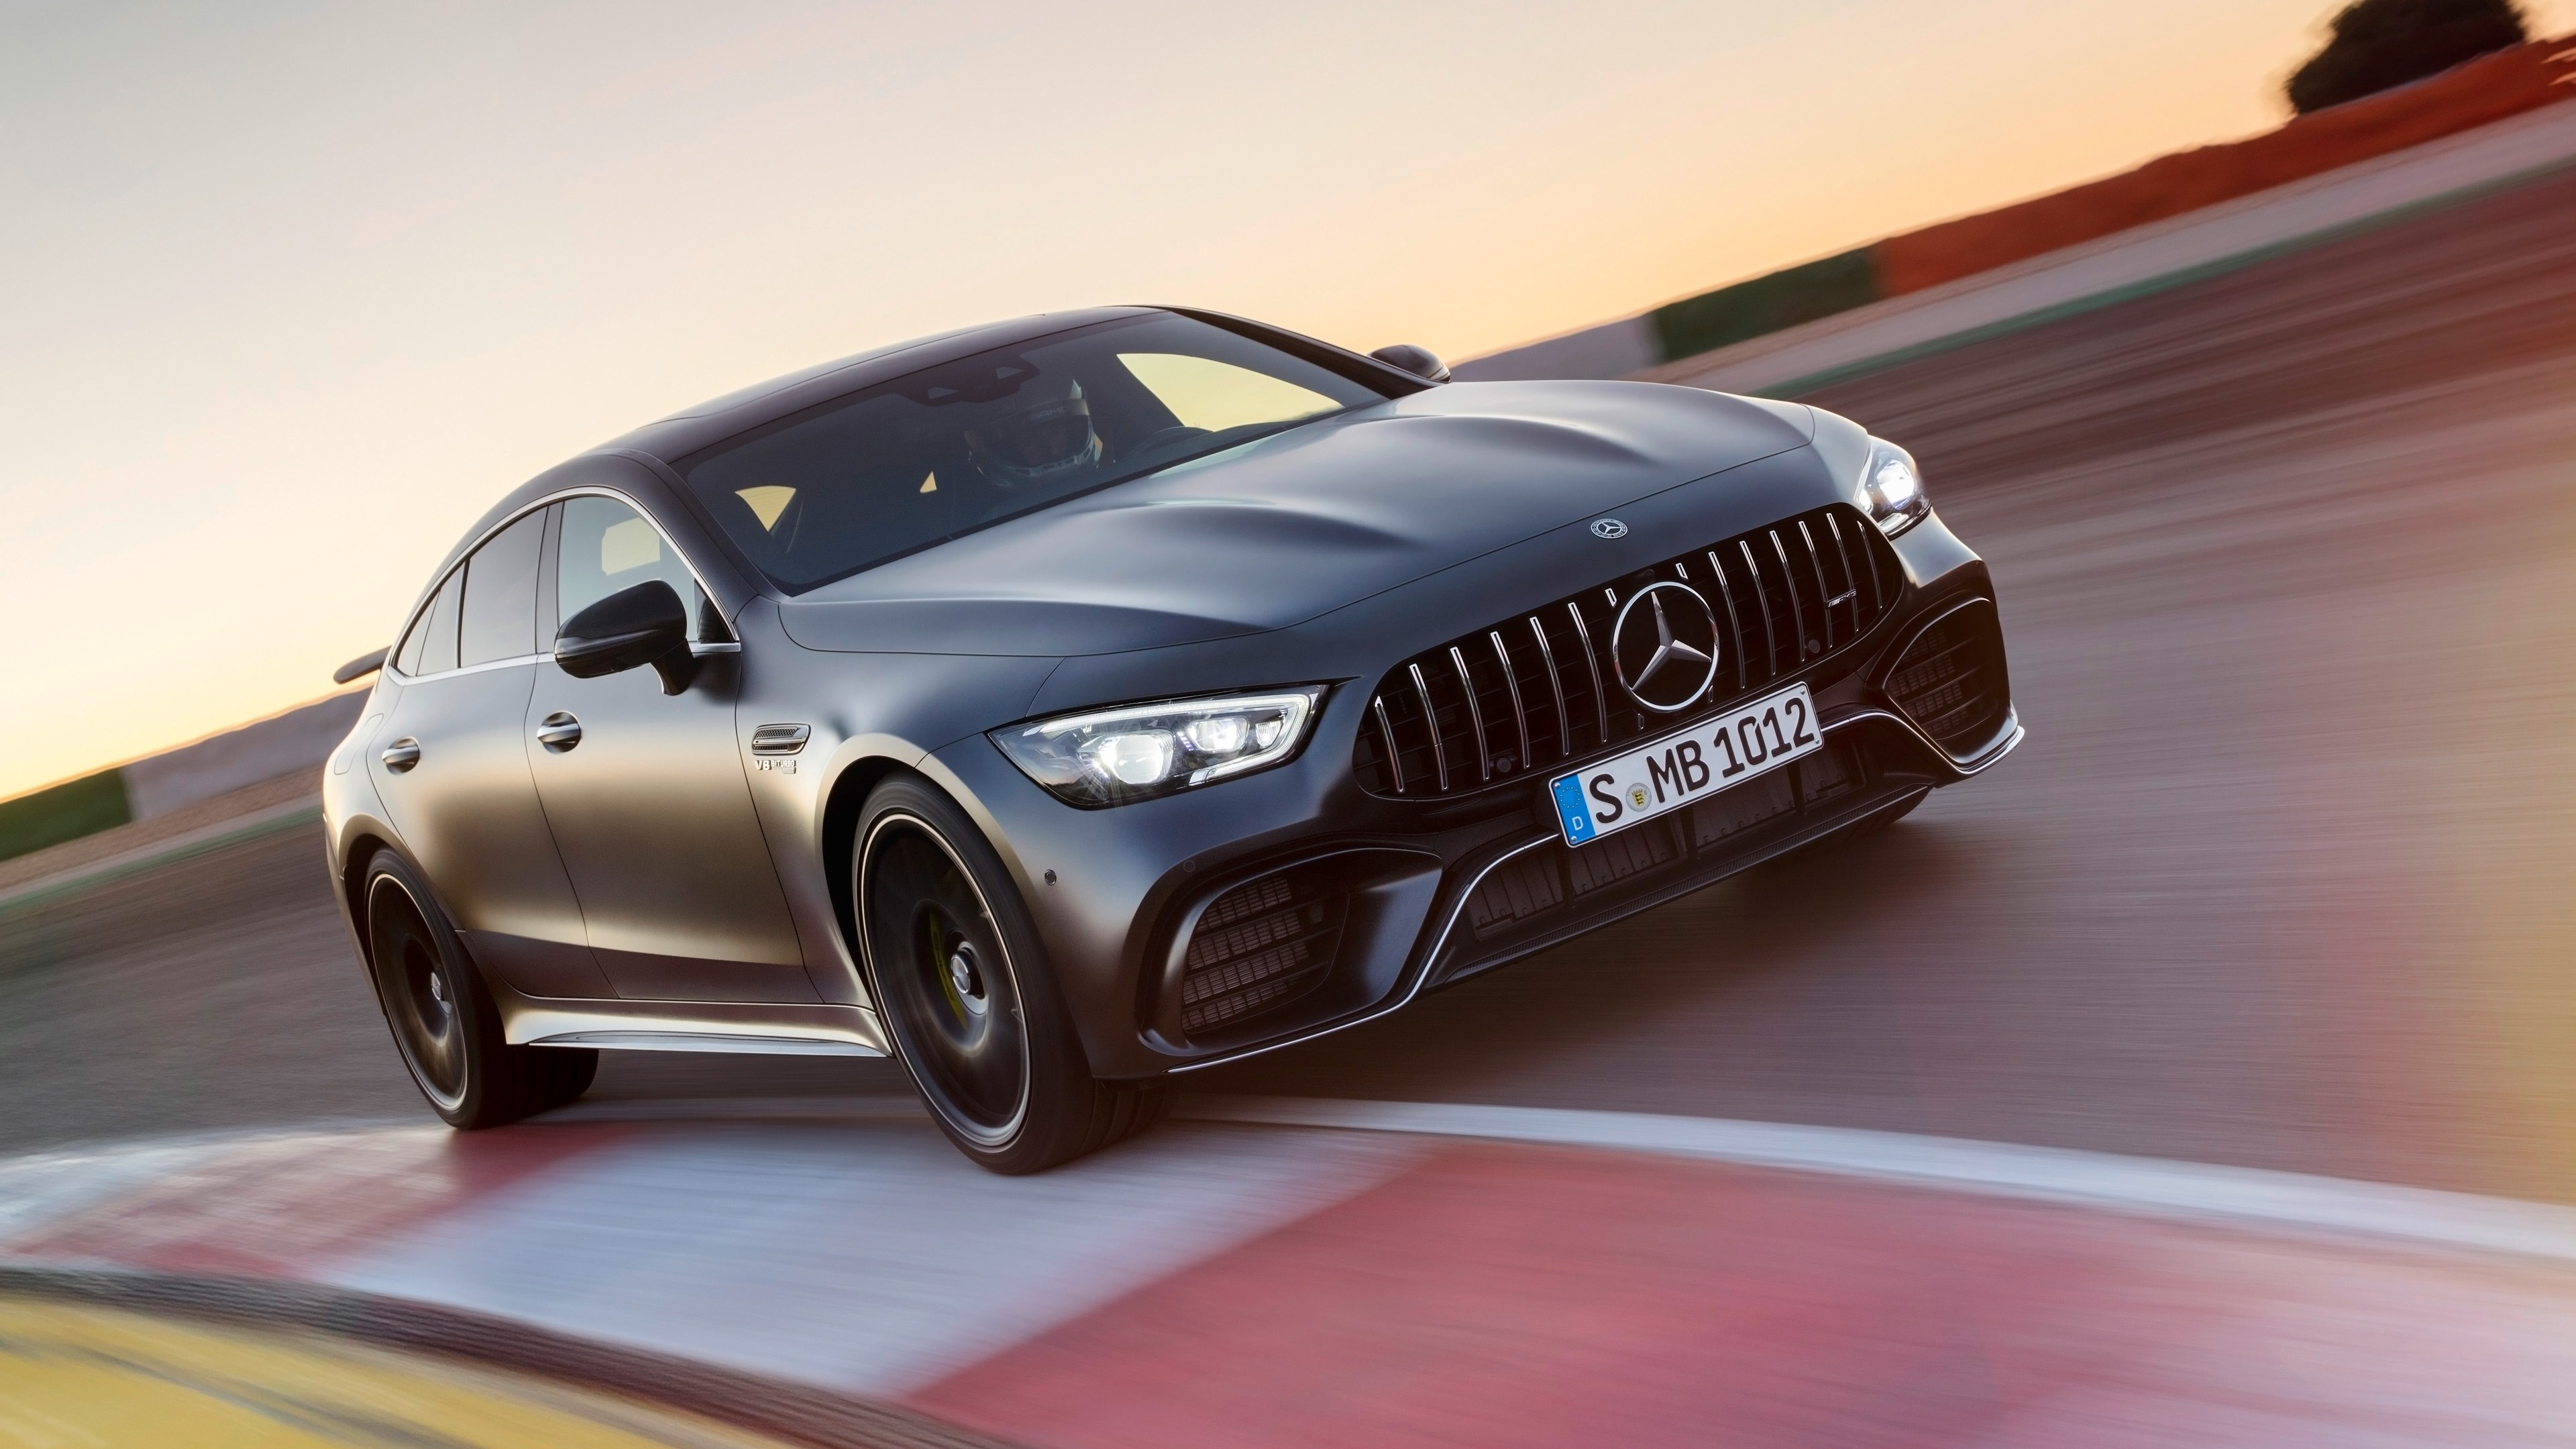 2019 Mercedes Amg Gt 4 Door Coupe Preview 10wallpaper Com